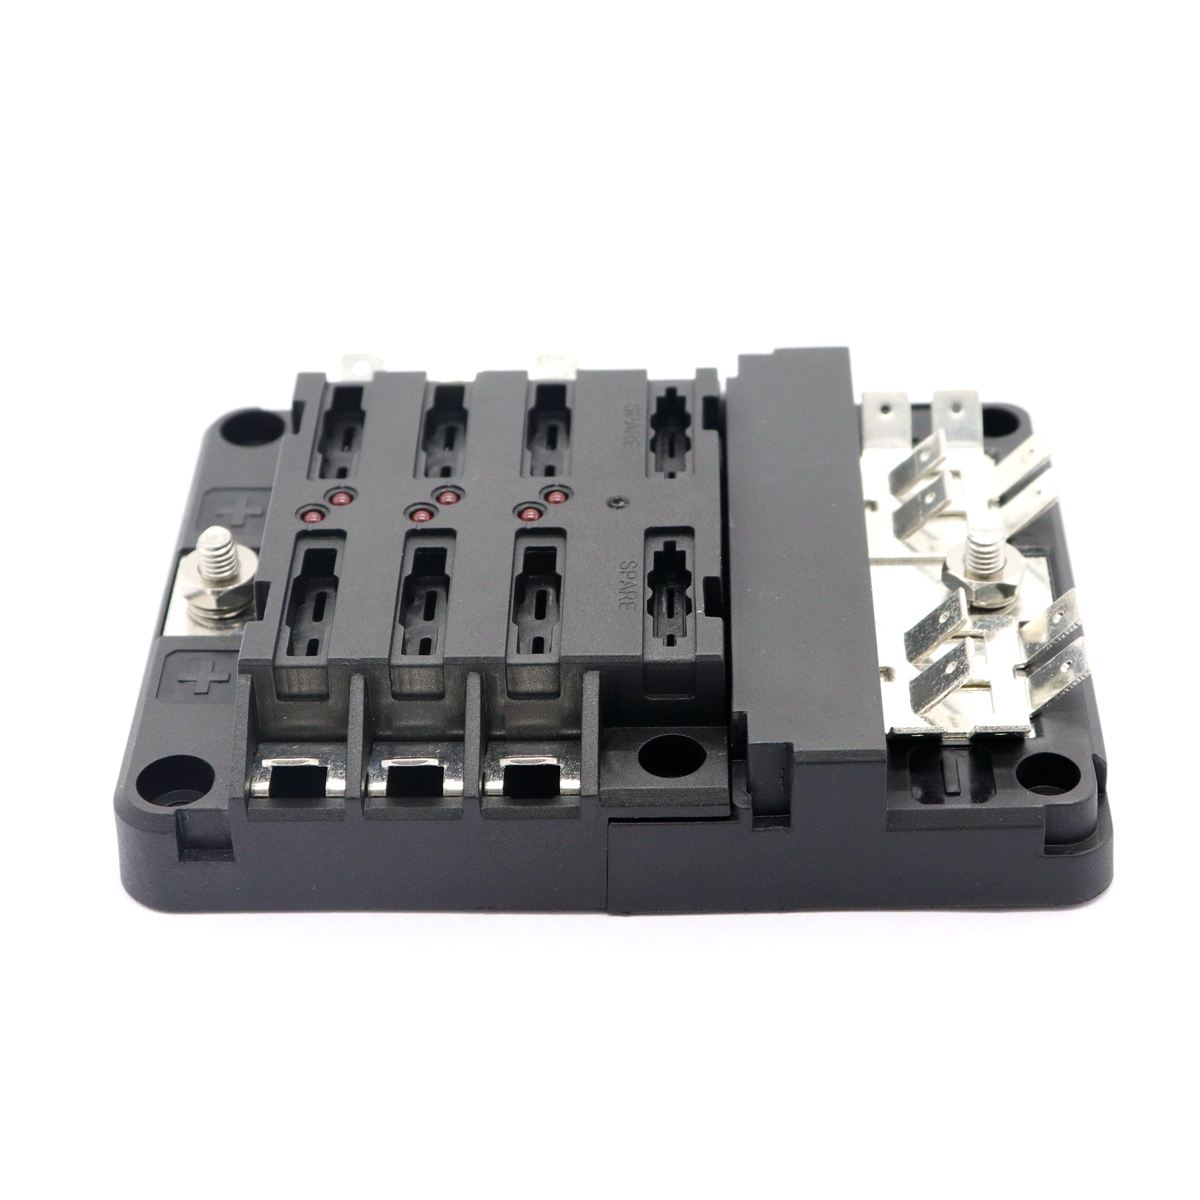 hight resolution of universal car blade fuse block 6 circuits ground negative cover abs plastic for bus bar cover boat marine car accessory tool in fuses from automobiles